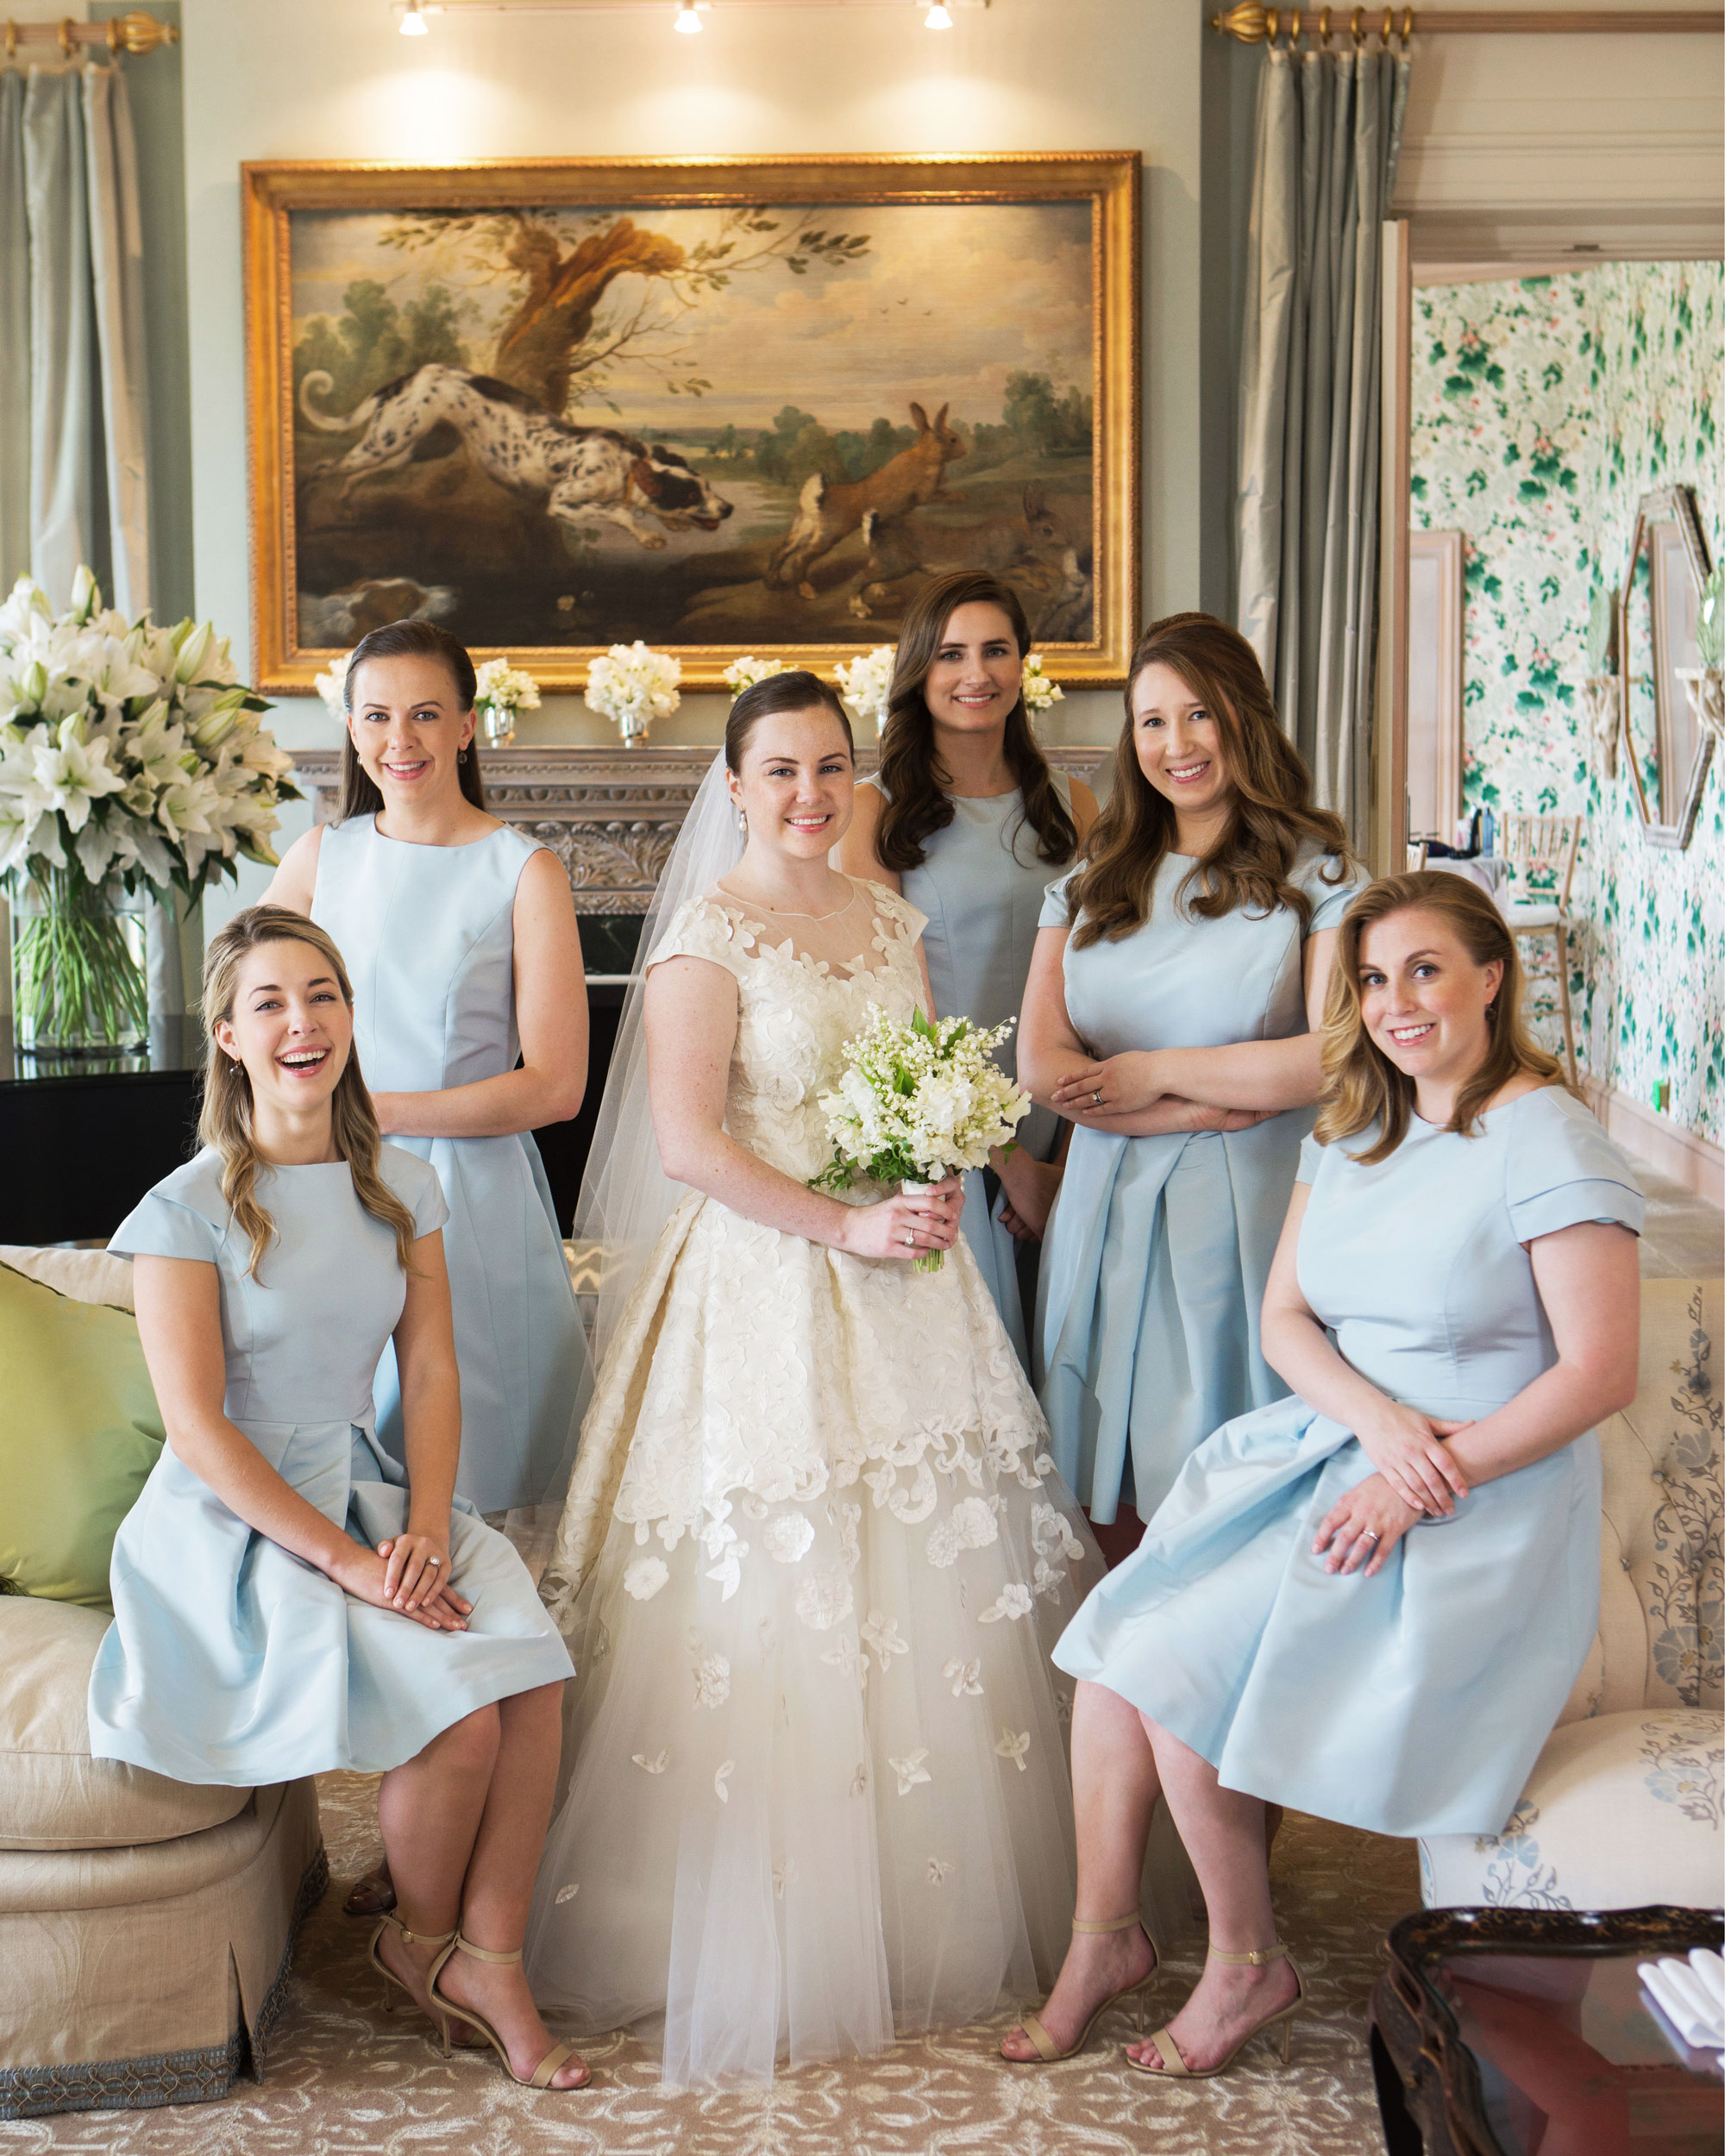 emily-matthew-wedding-bridesmaids-0032-s112720-0316.jpg